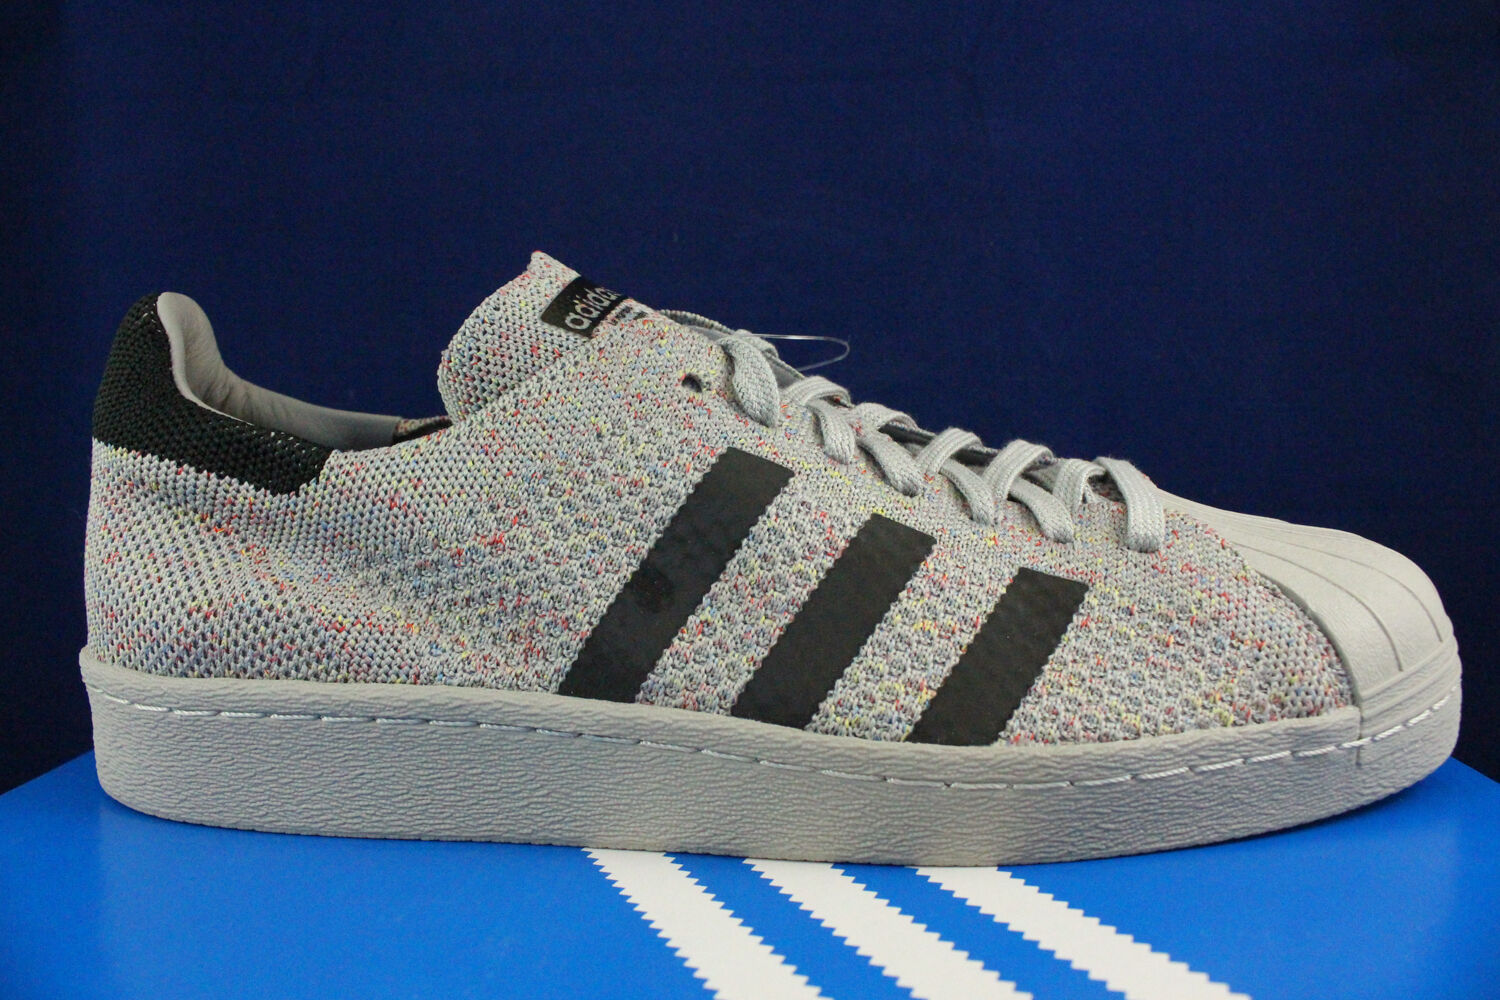 Adidas Originals blanc/noir Superstar II Trainers  Casual Lace Up G17068 New